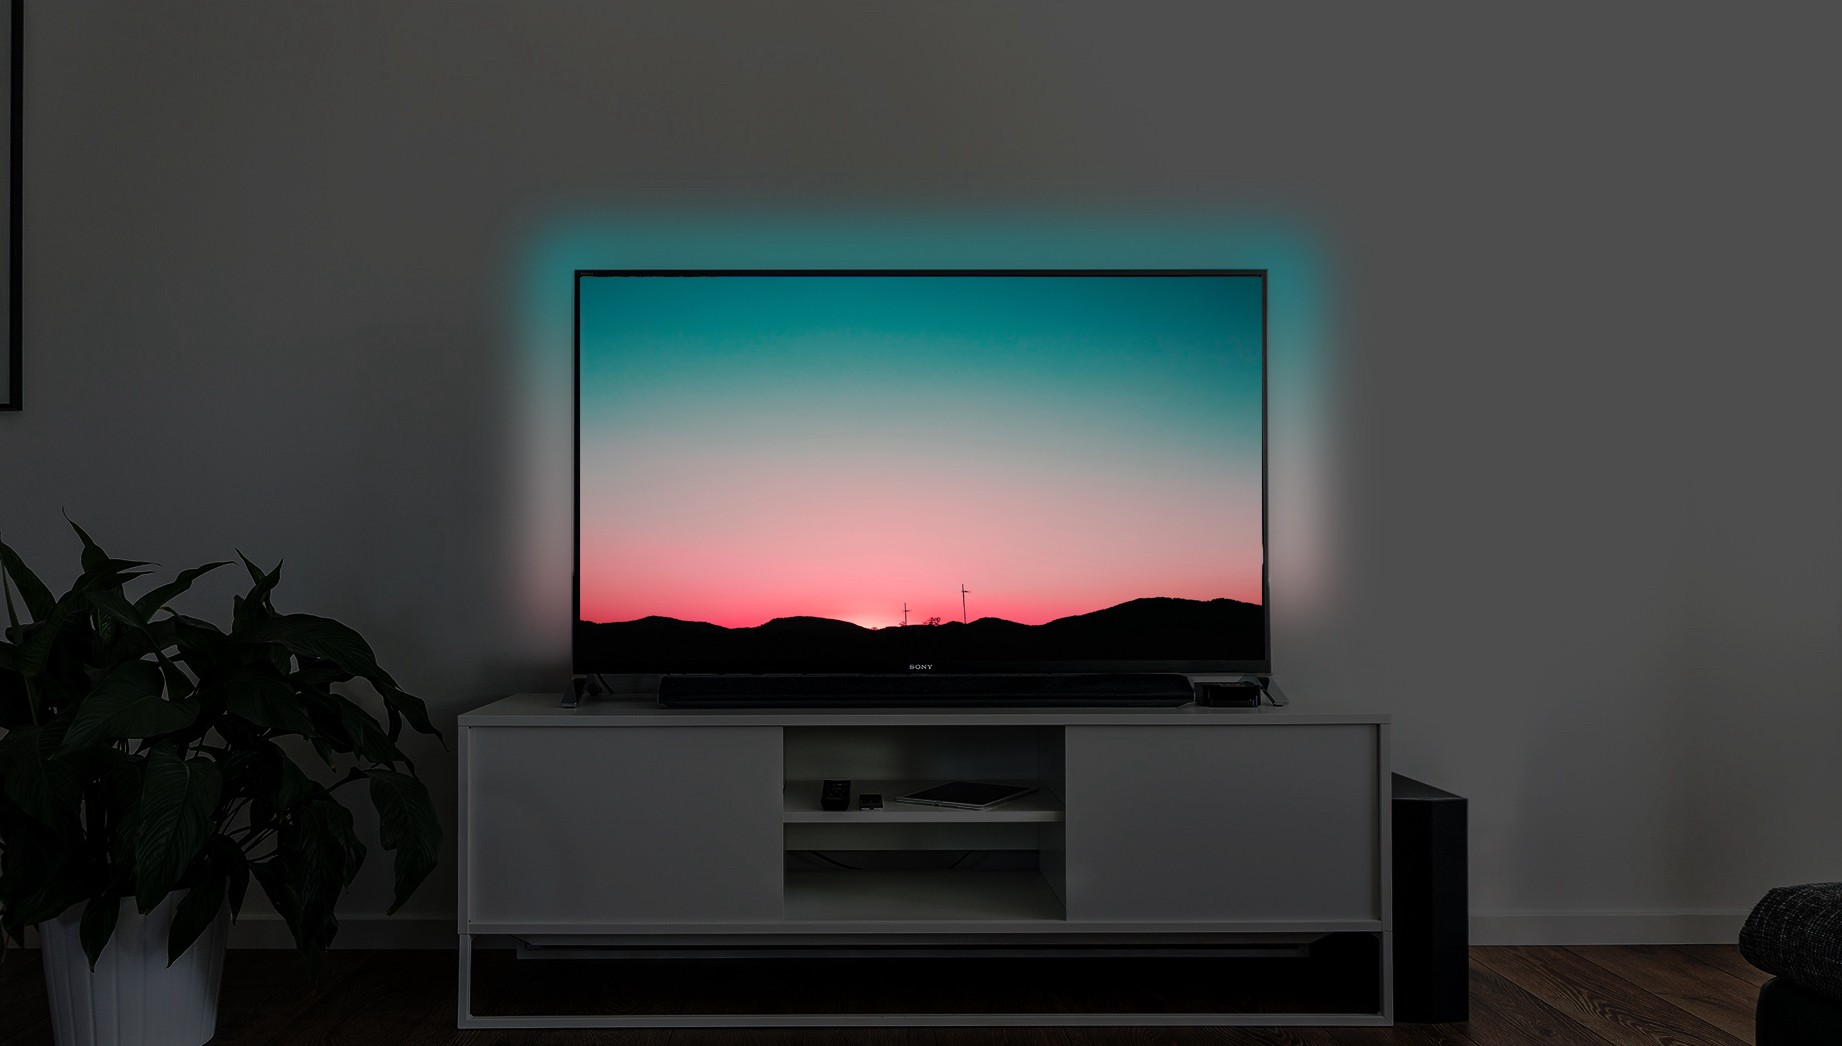 The Best TV Experience: DIY Philips Ambilight - By